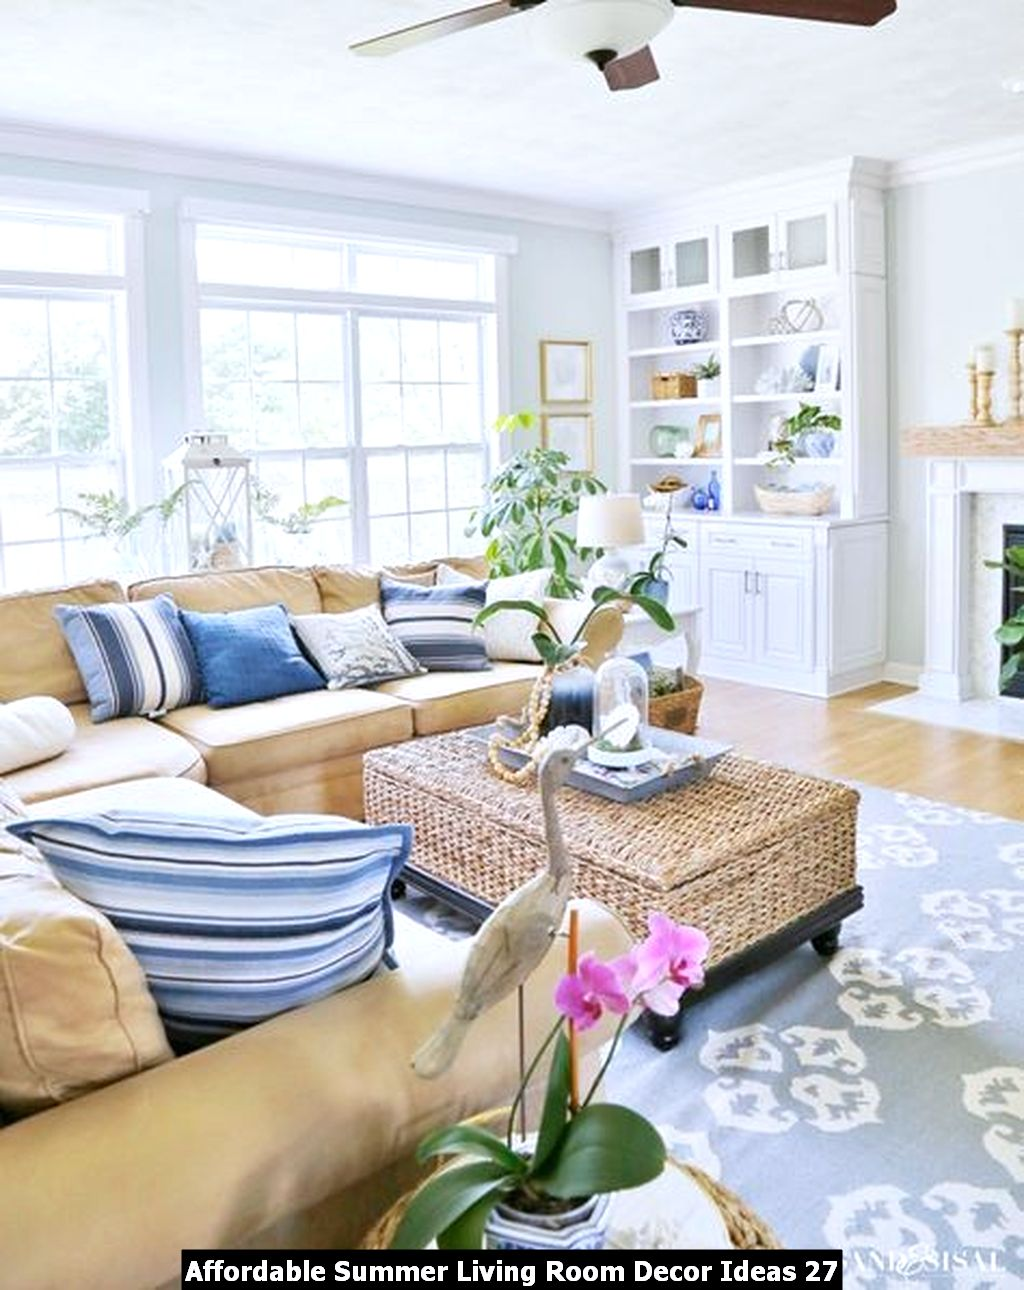 Affordable Summer Living Room Decor Ideas 27